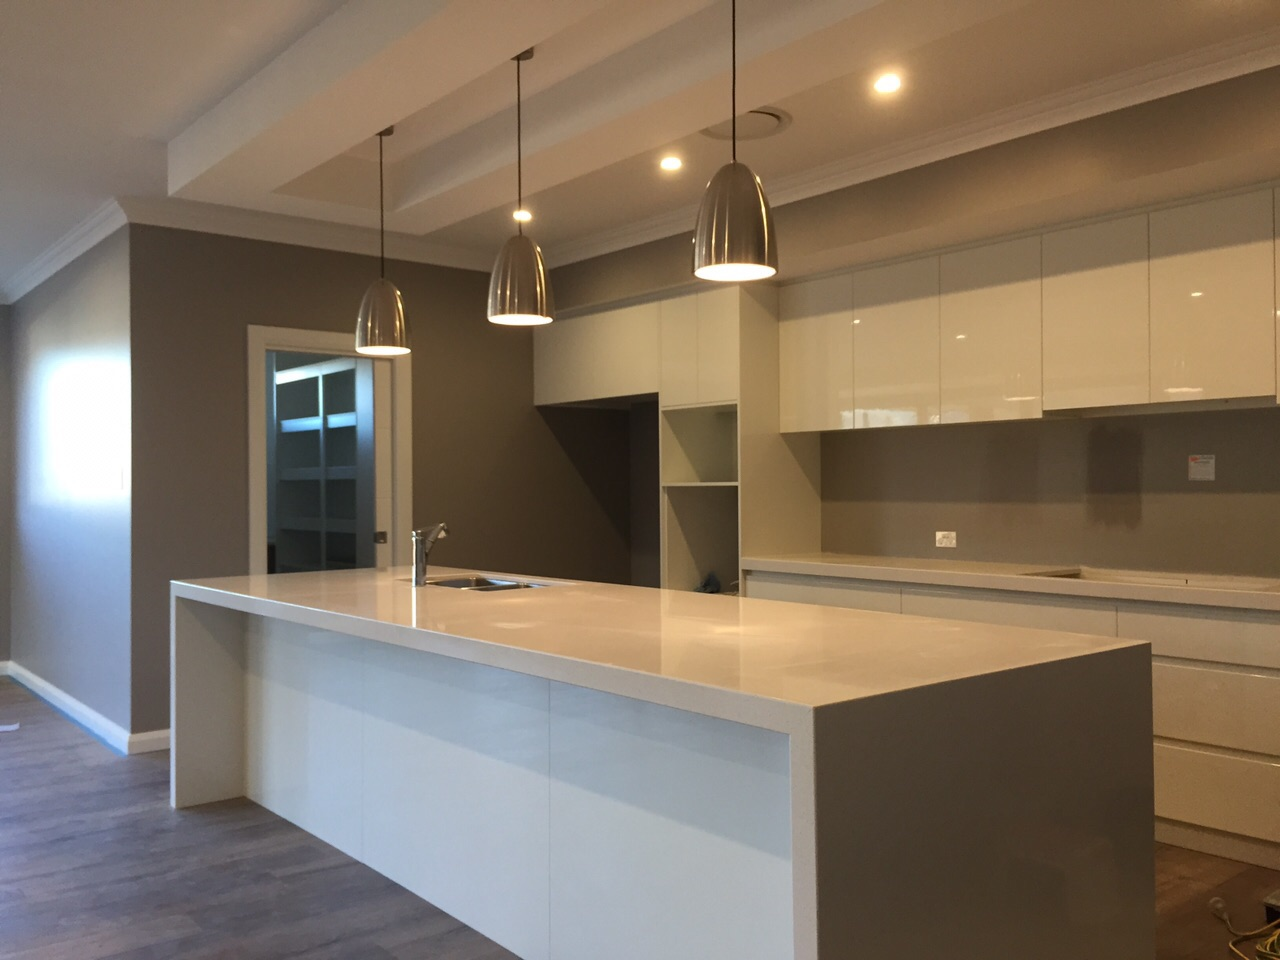 New Display Home South West Sydney - Grand Opening